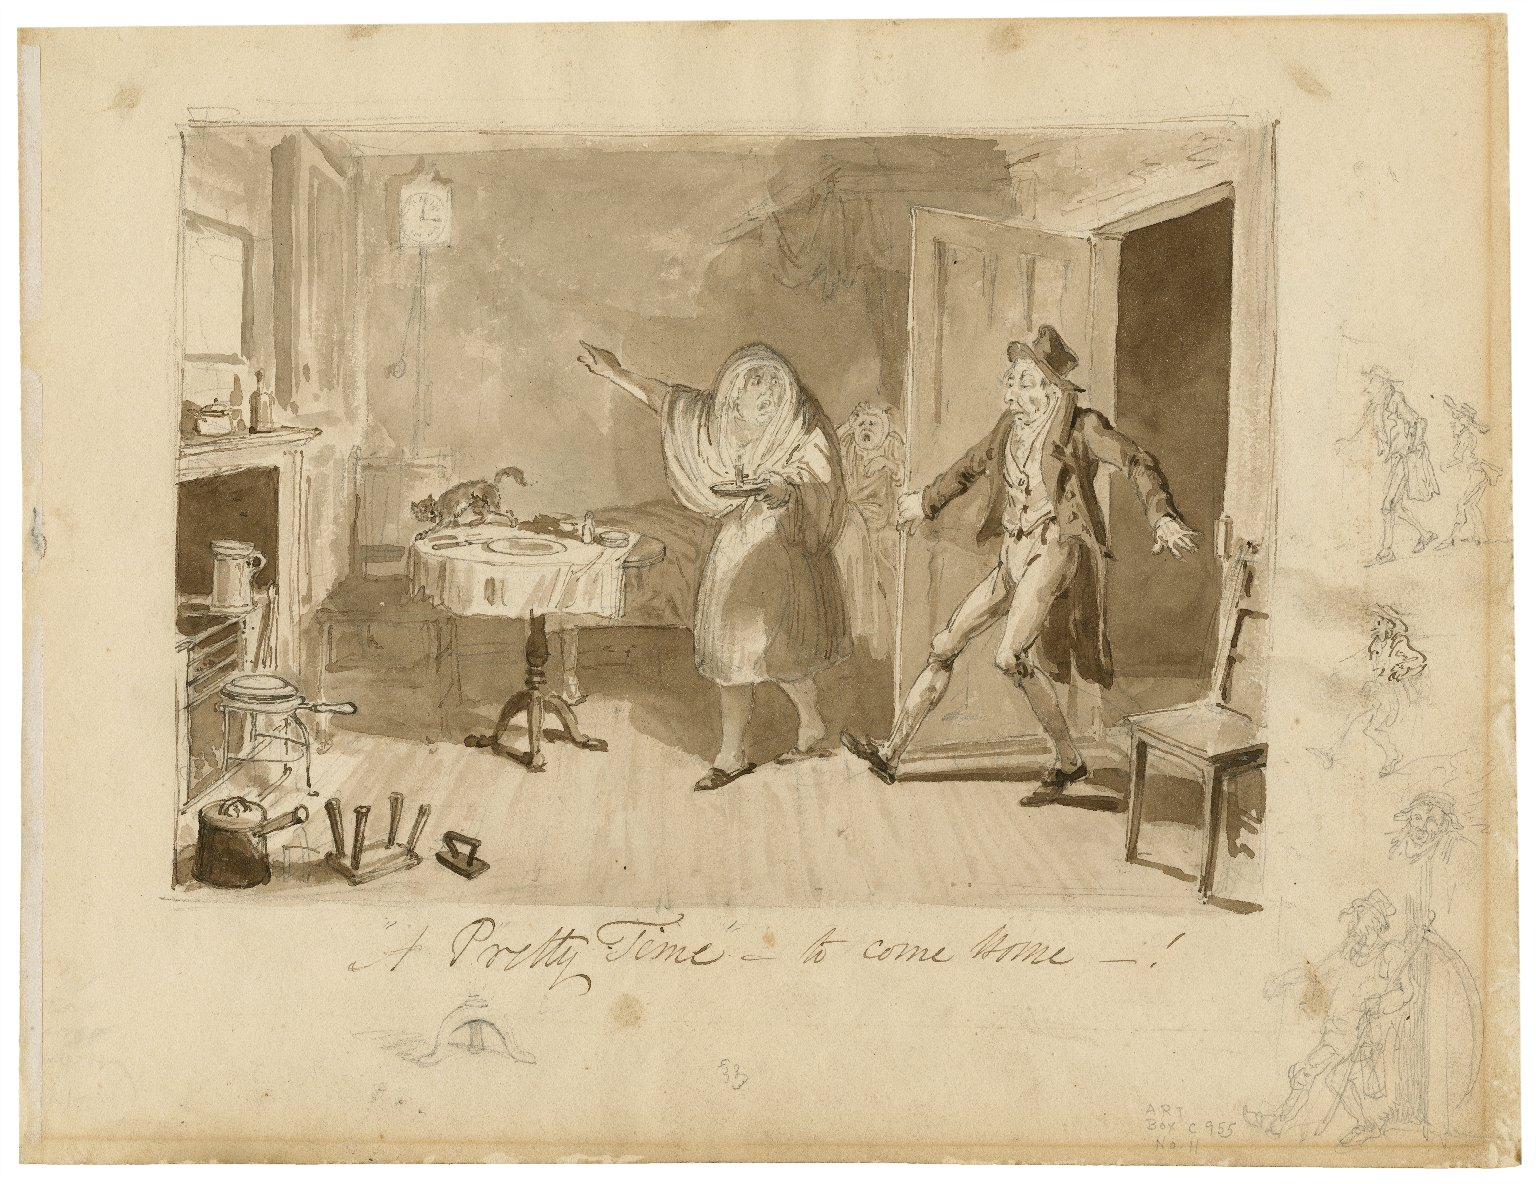 A pretty time to come home [graphic] / [George Cruikshank].